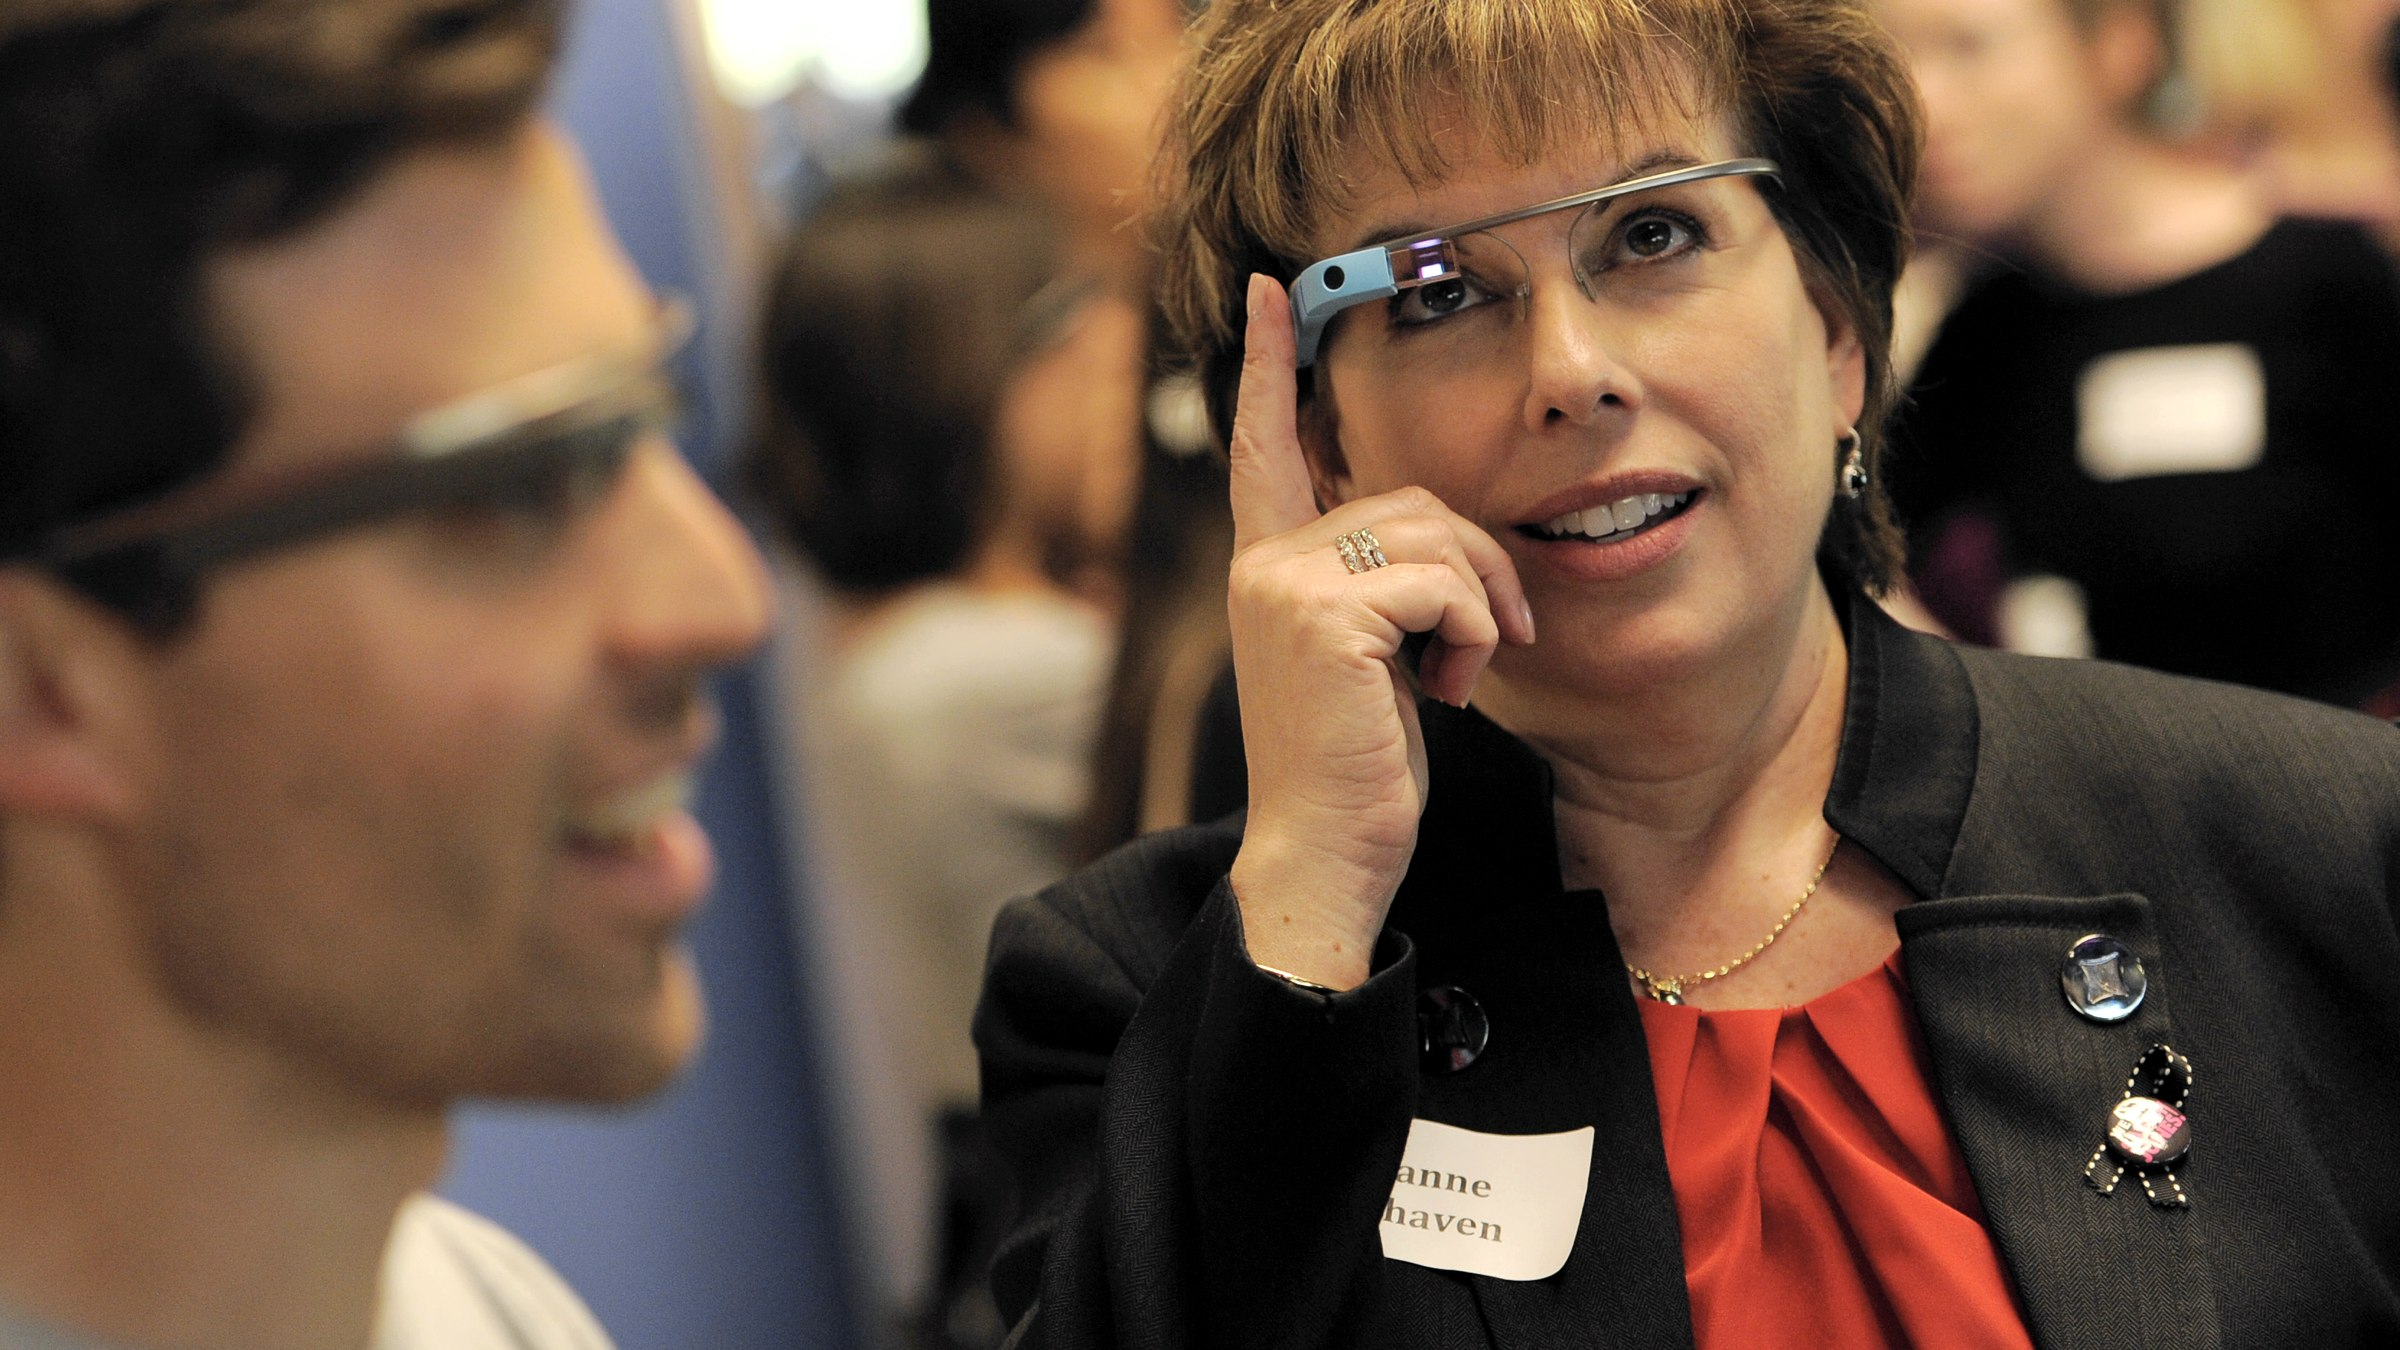 IMAGES DISTRIBUTED FOR THE TELEVISION ACADEMY - Academy of Television Arts and Sciences member Ilyane Morden Kichaven, right, gets a lesson on Google Glass with Google's Sami Tahari at the YouTube Space L.A. Tour and Happy Hour, on Friday, March 7, 2014 in Los Angeles. (Photo by Chris Pizzello/Invision for the Television Academy/AP Images)